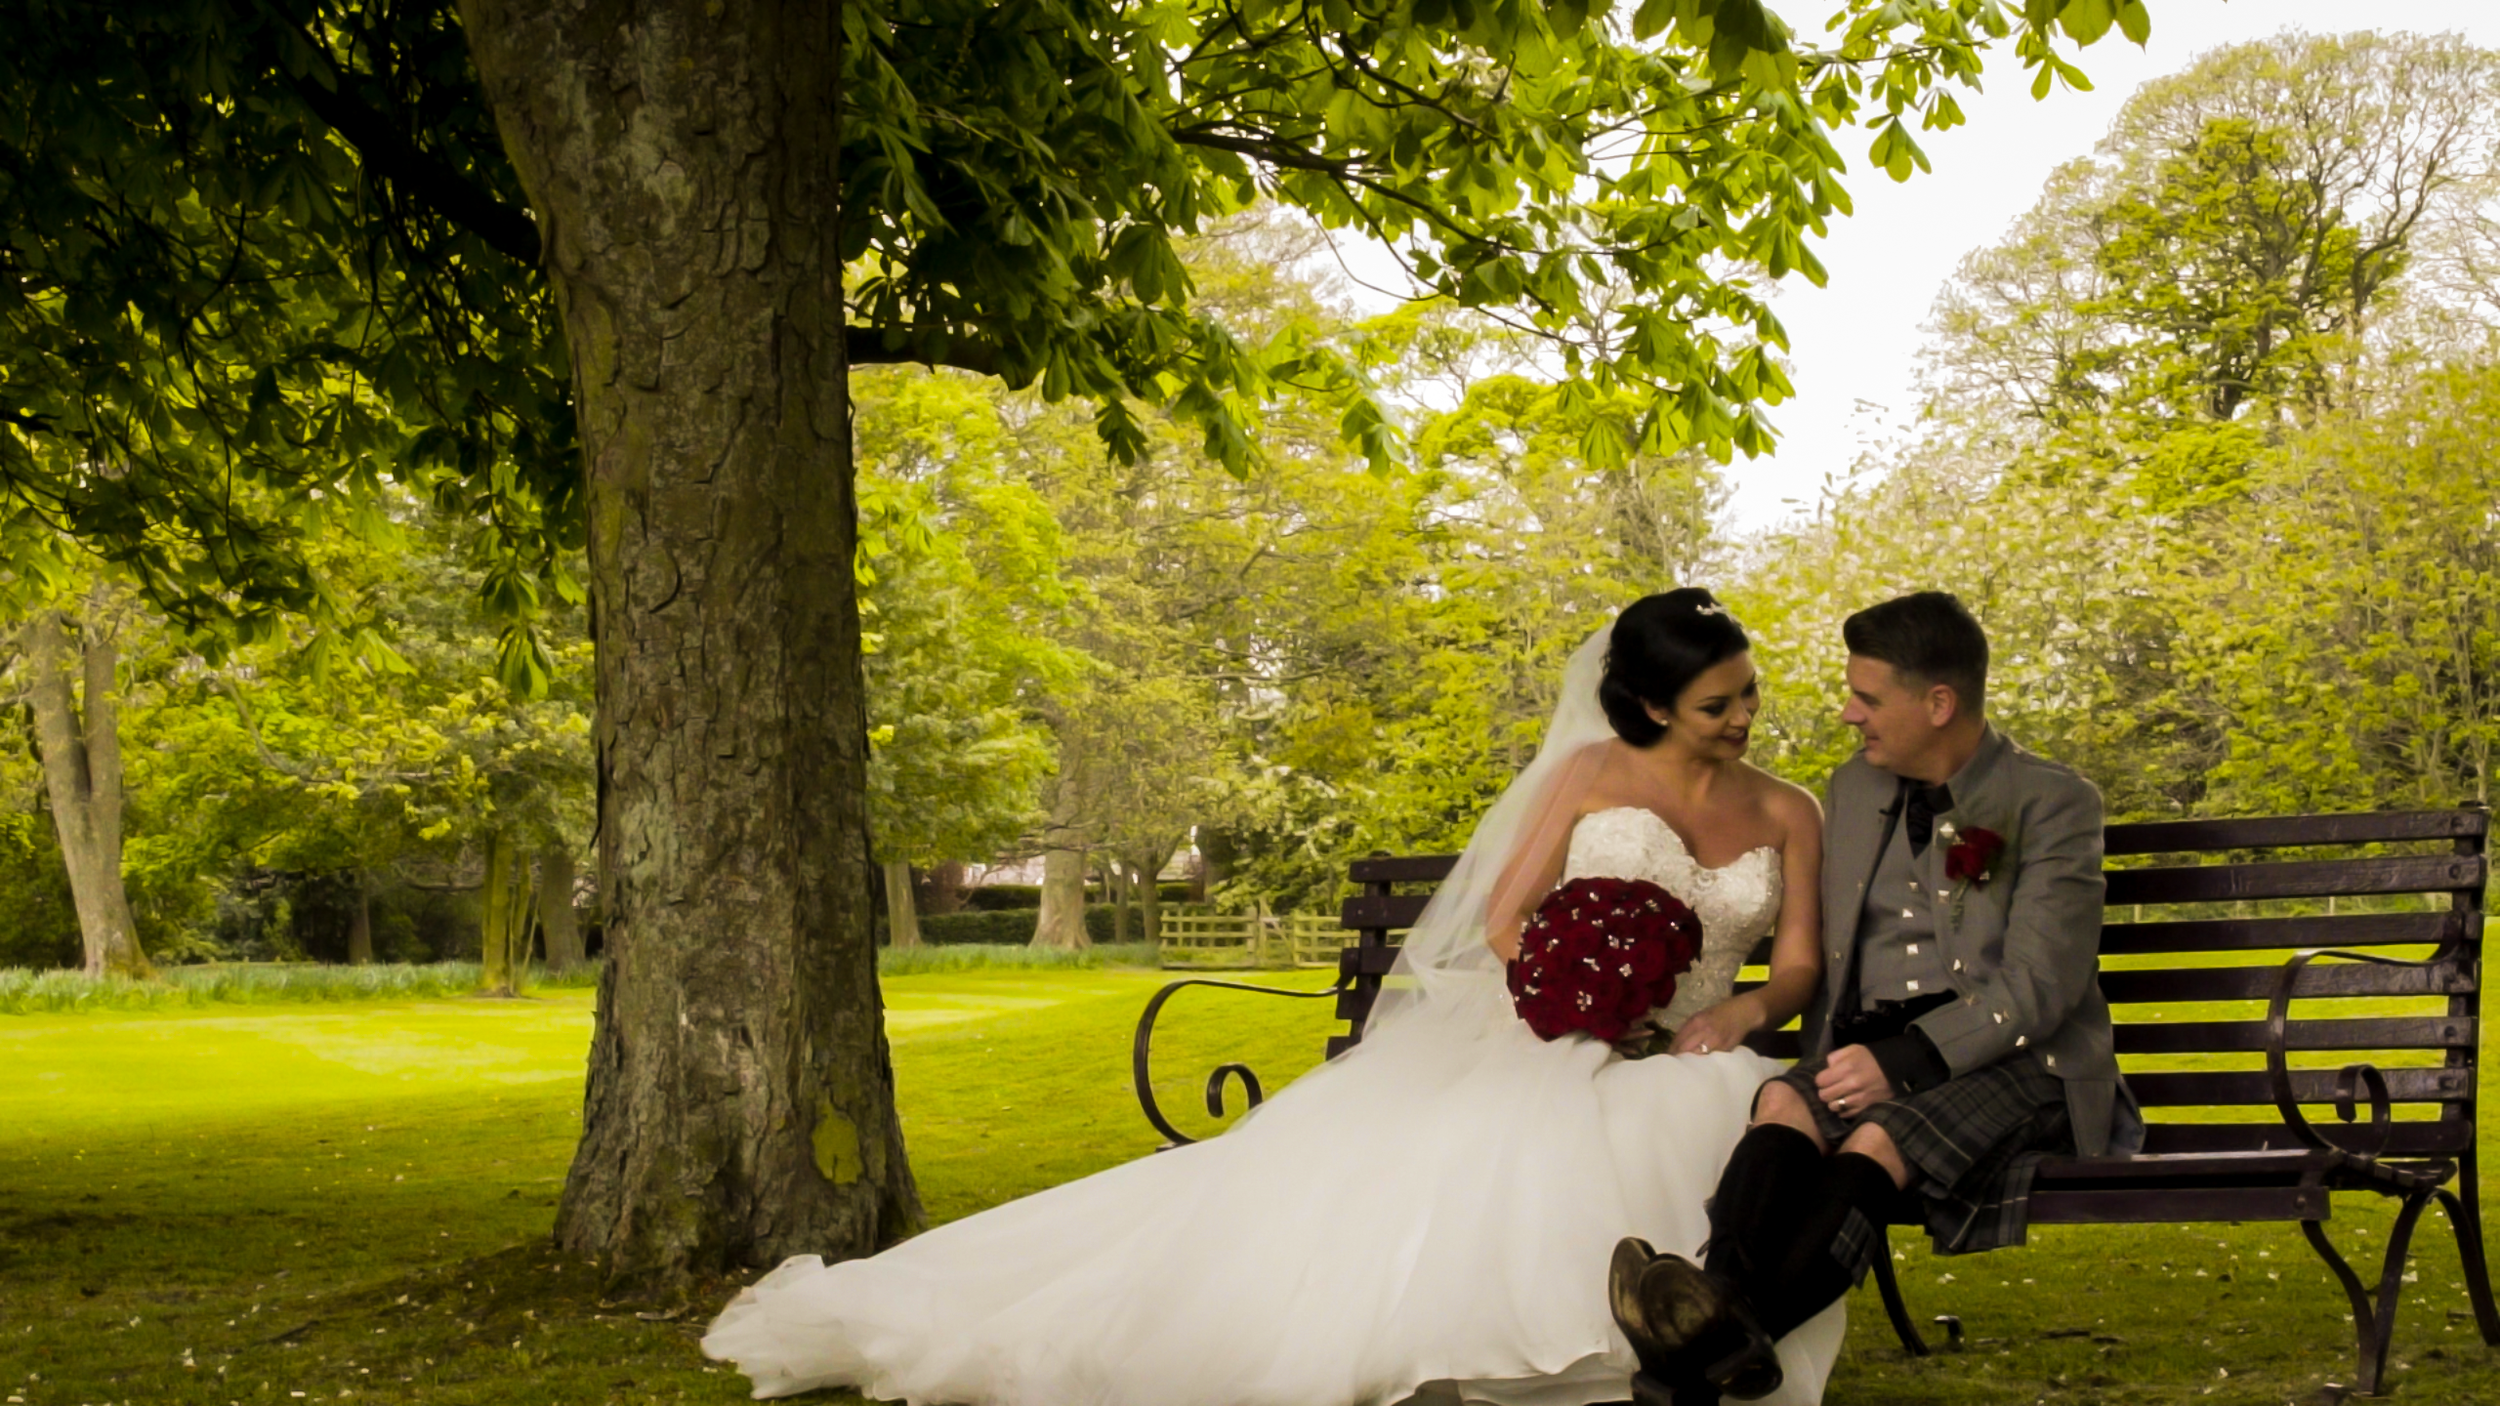 Ashley & raymond - Prestonfield House, Edinburgh